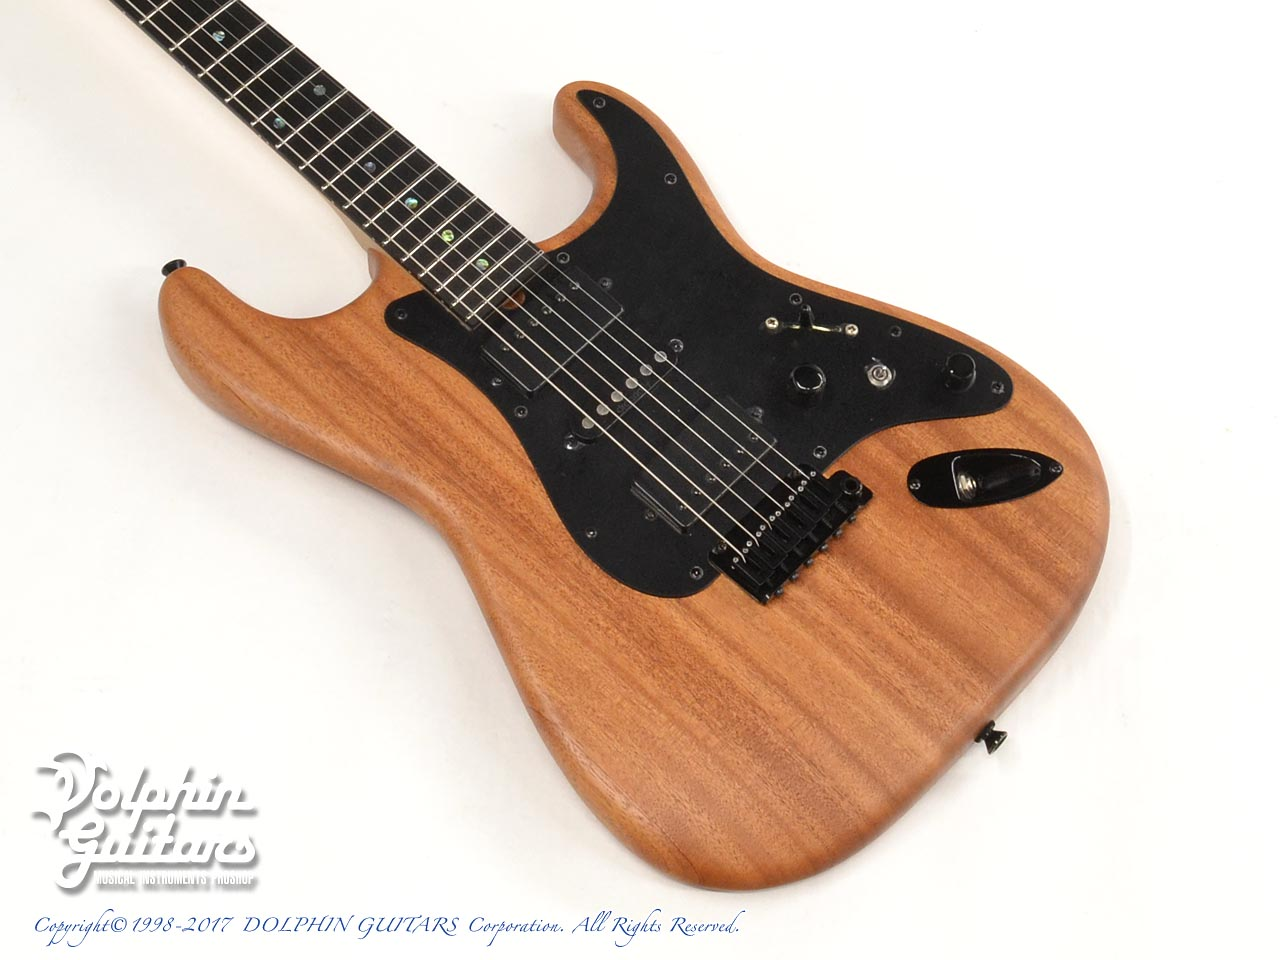 dragonfly: HI STA 22 FULL SIZE H-S-H Maple Neck (African Mahogany) (1)